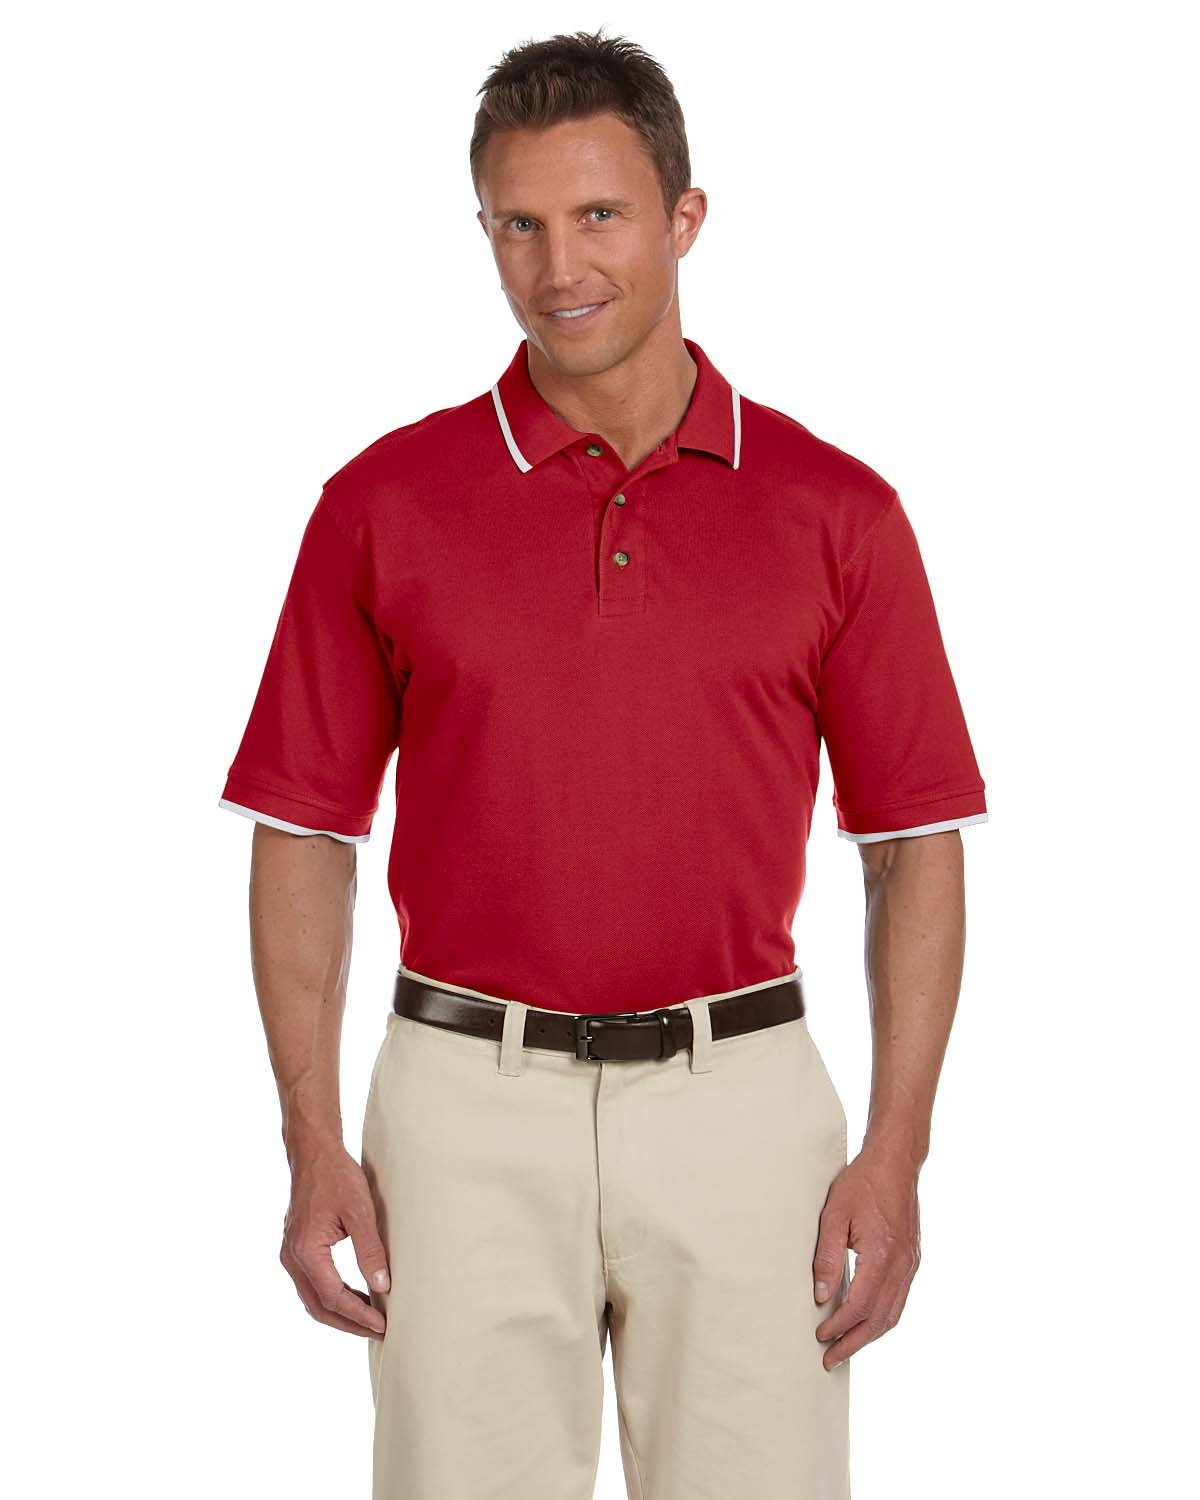 Harriton Adult 6 oz. Short-Sleeve Piqué Polo with Tipping RED/ WHITE